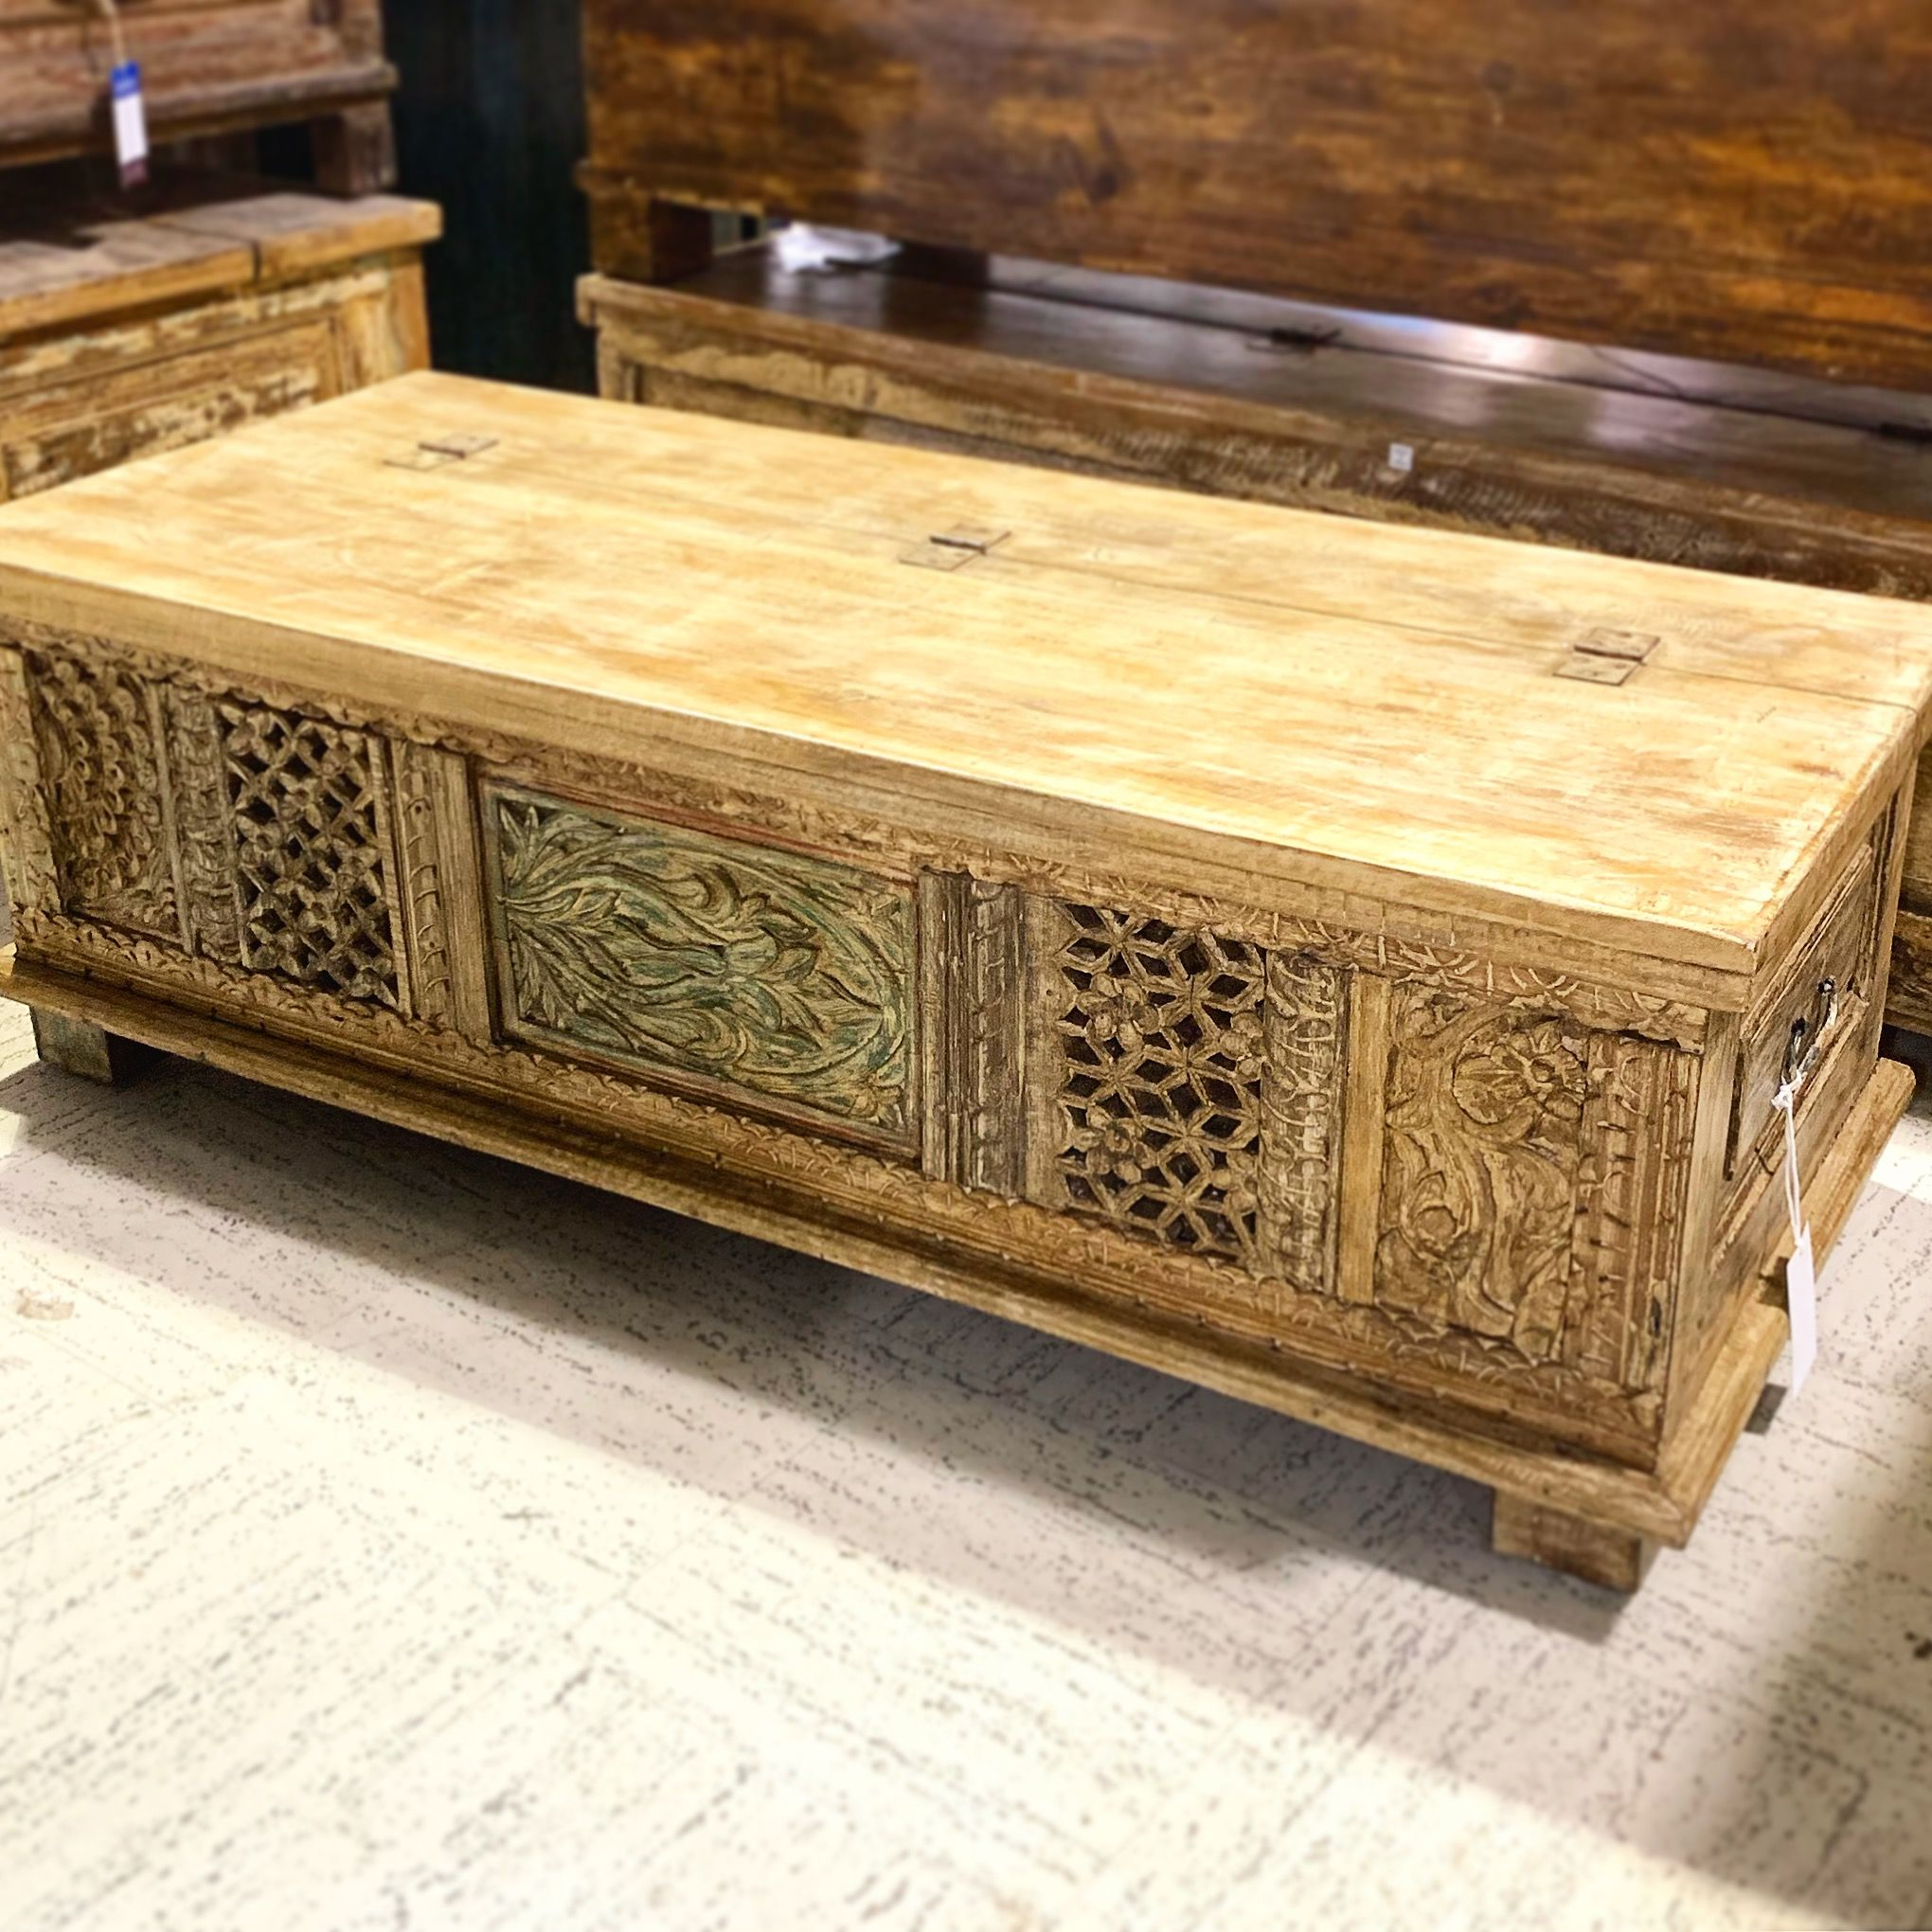 Sold Carved Reclaimed Wood Coffee Table Trunk Coffee Table Wood Reclaimed Wood Coffee Table Rustic Coffe Table [ 2040 x 2040 Pixel ]